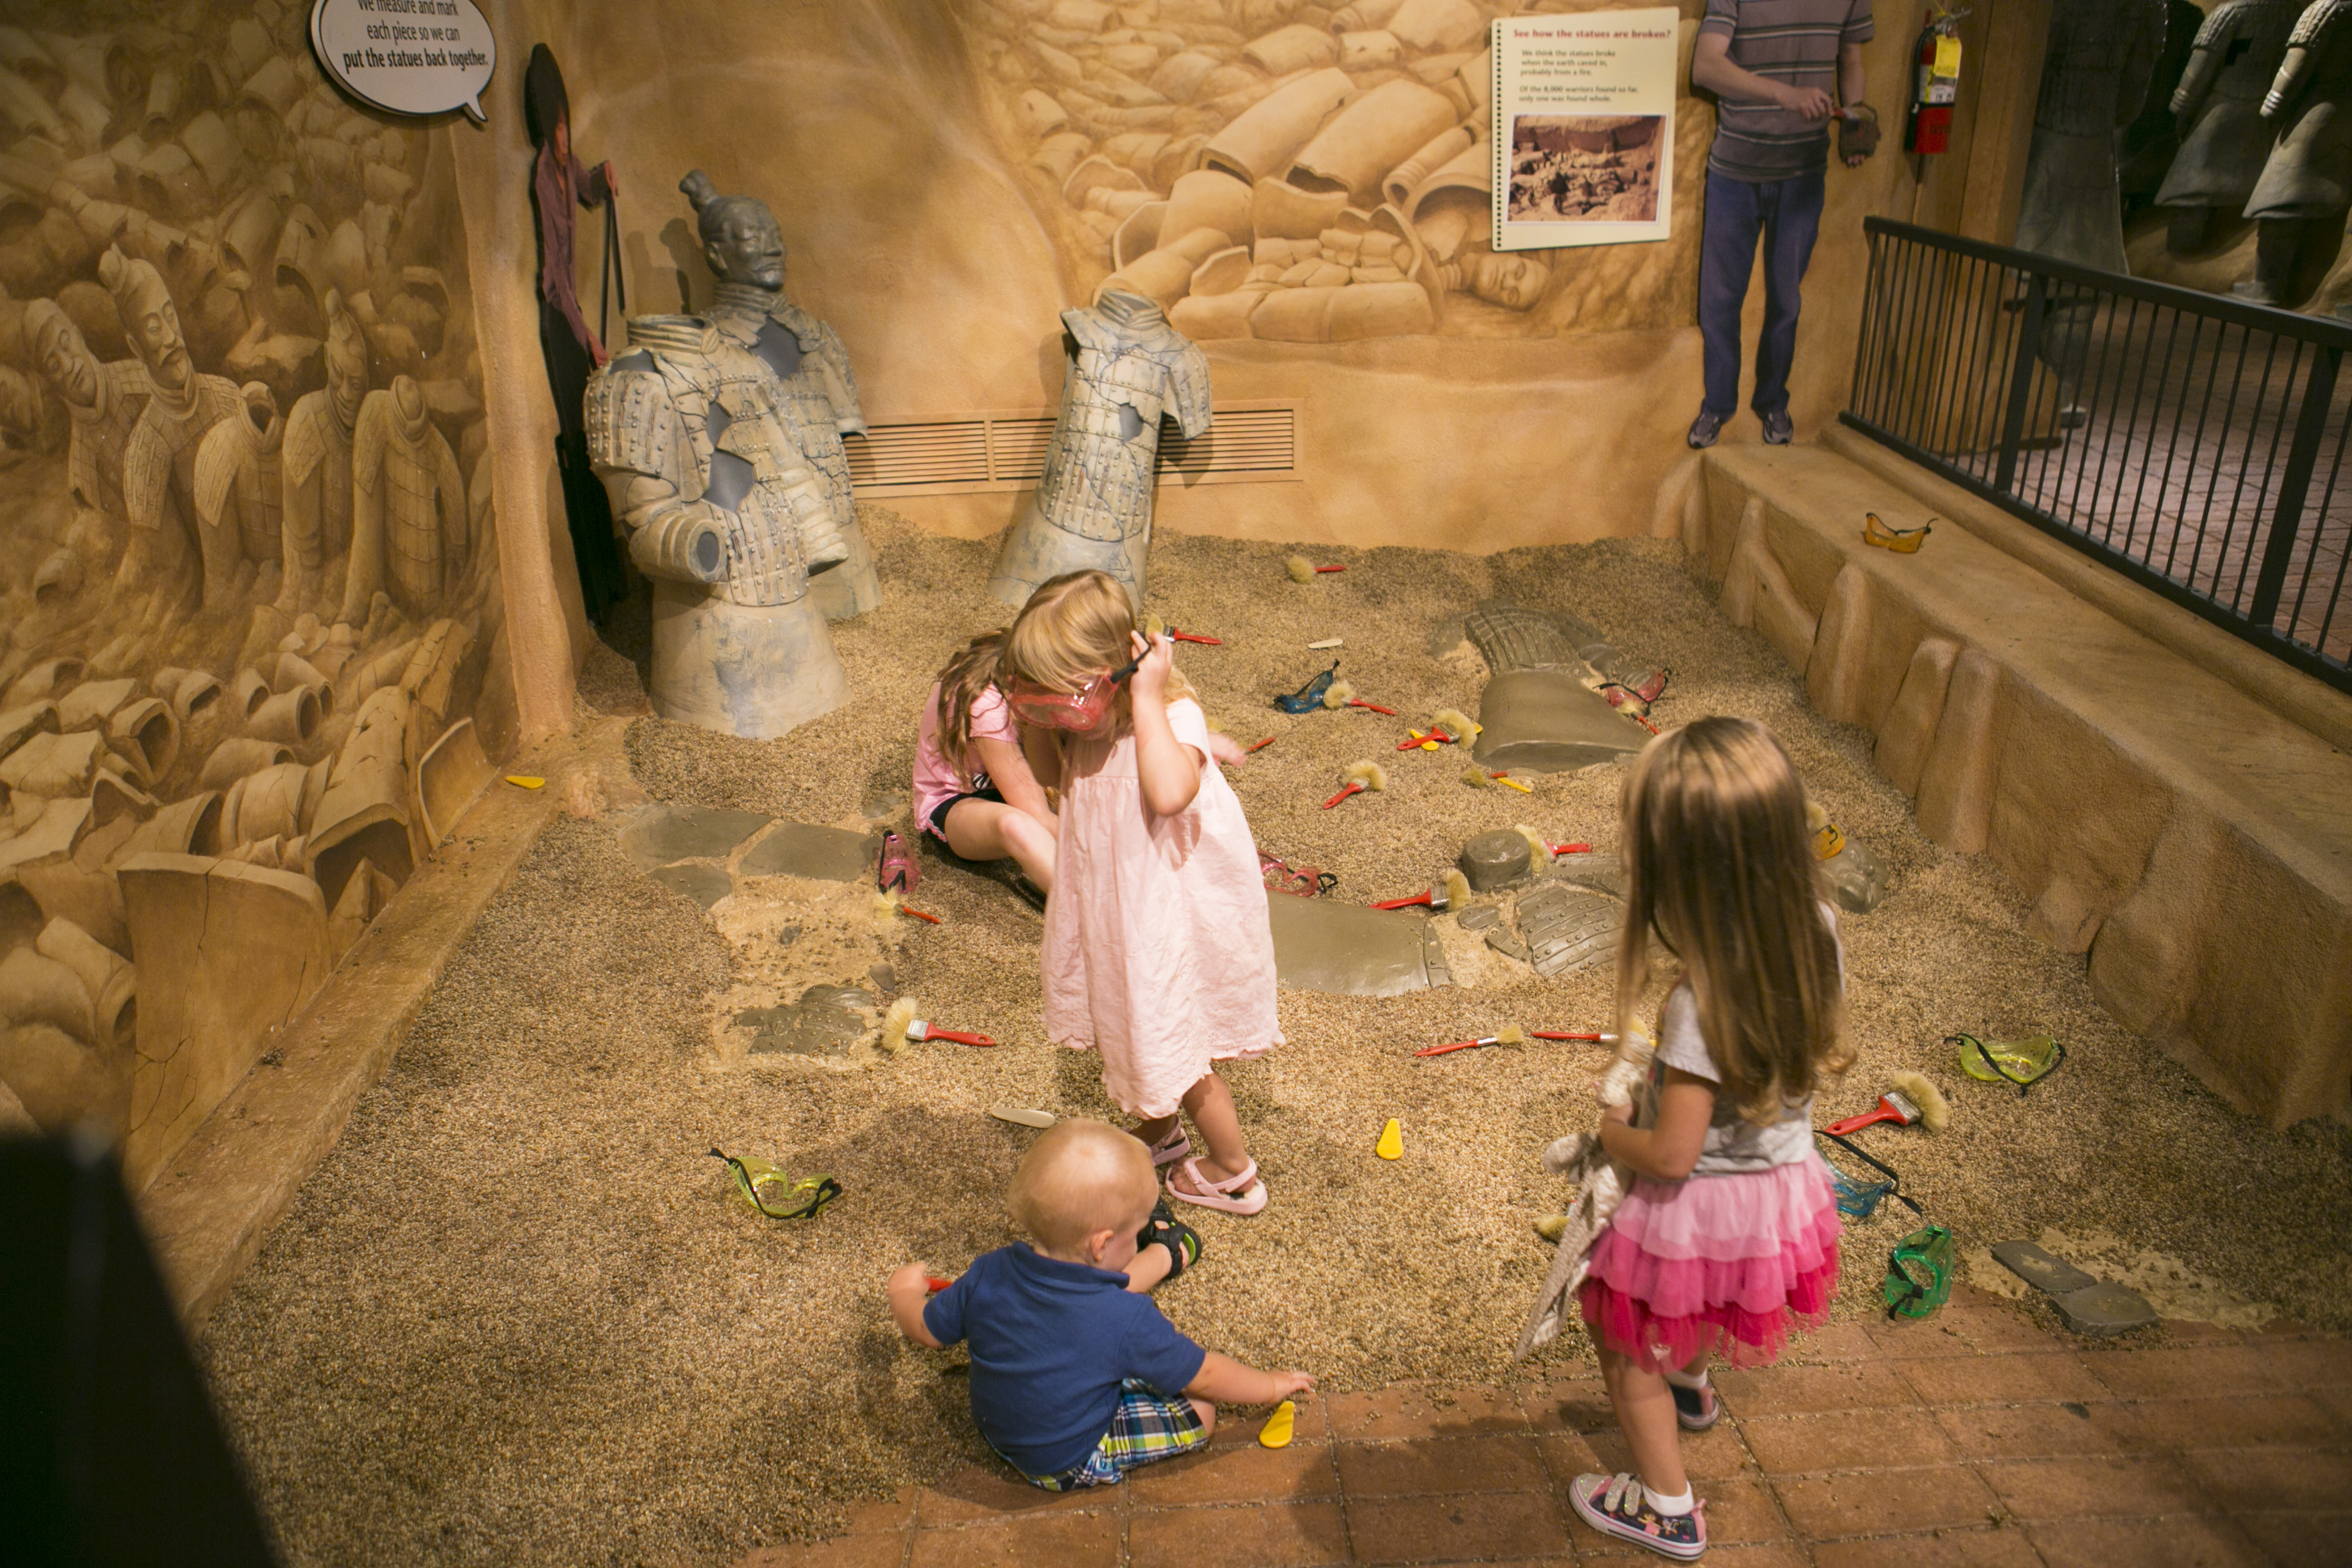 Indianpolis_Childrens_Museum-001_27